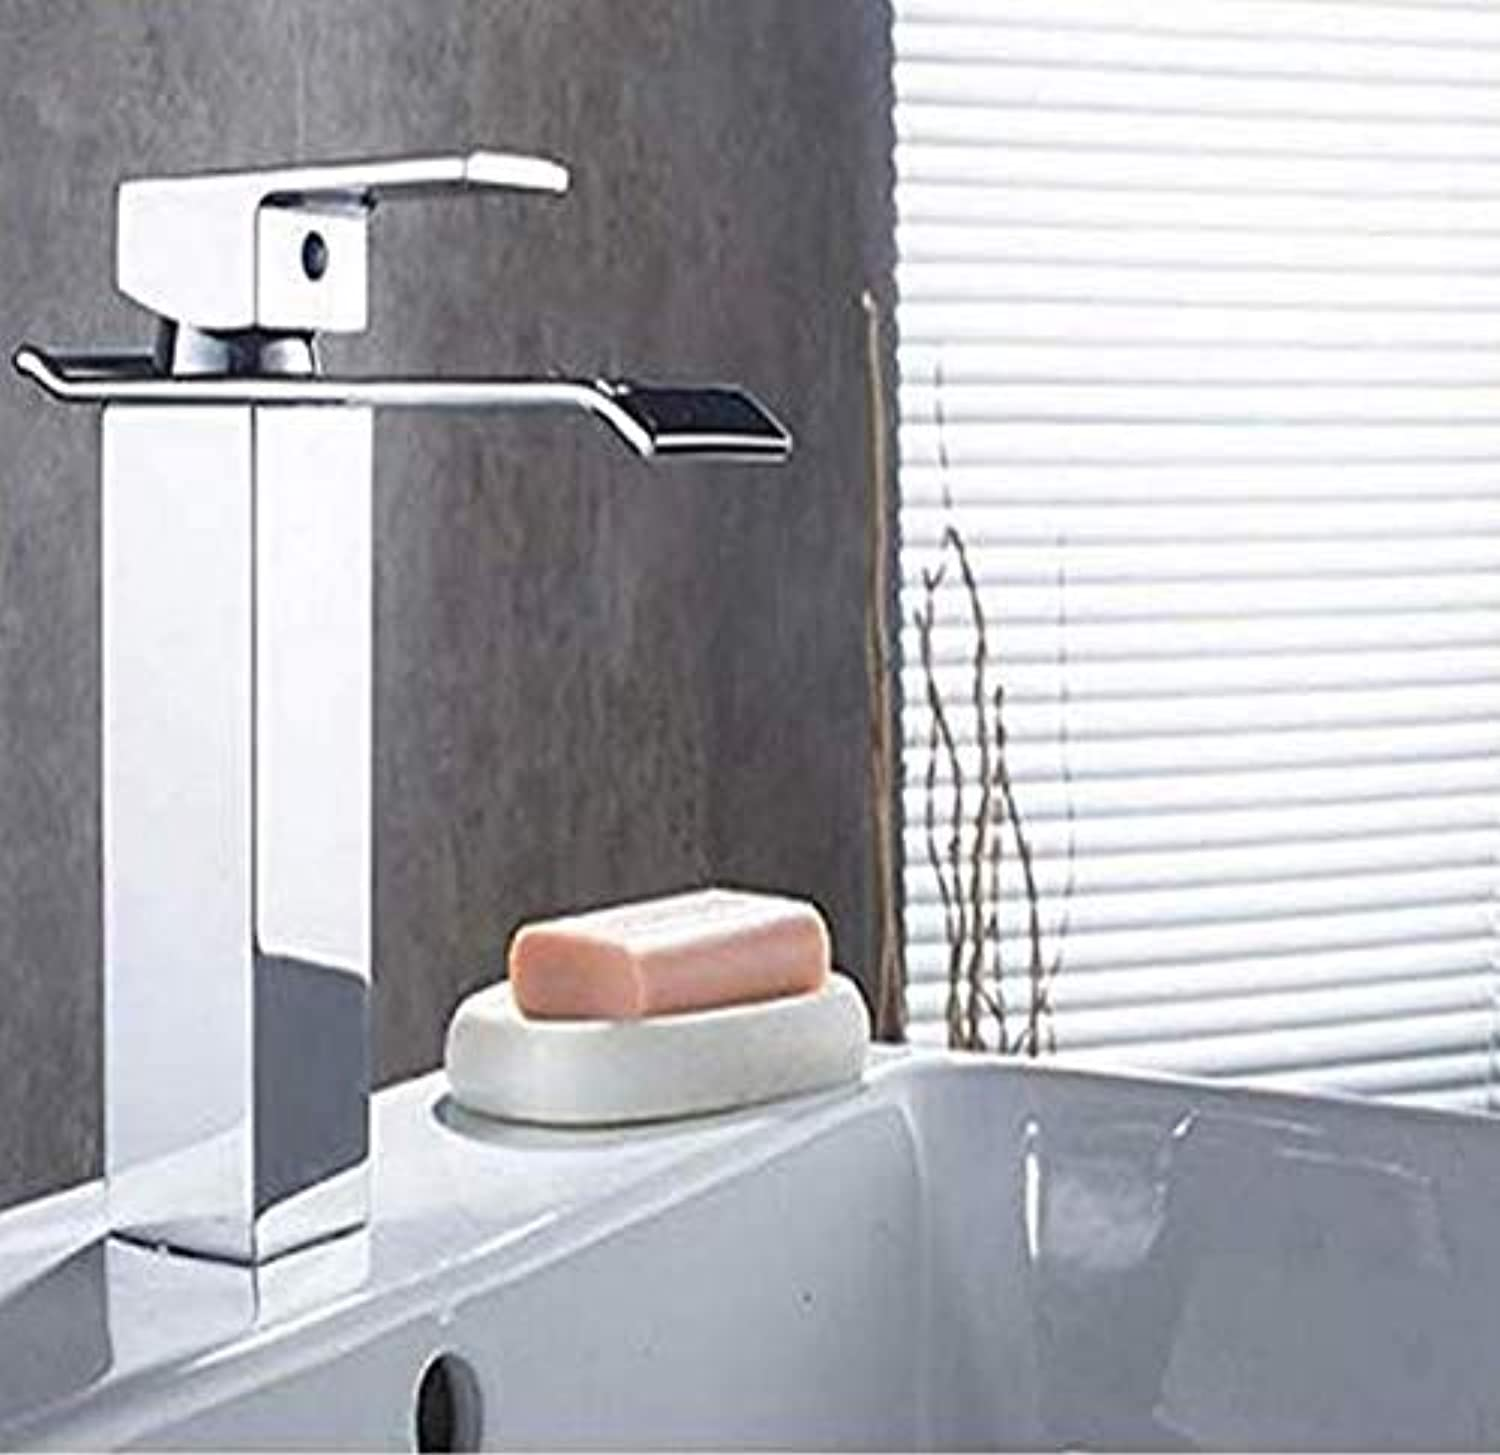 Faucets Basin Mixerchrome Sink Tap Vanity Hot Cold Water Faucet White Painting Tap Faucet